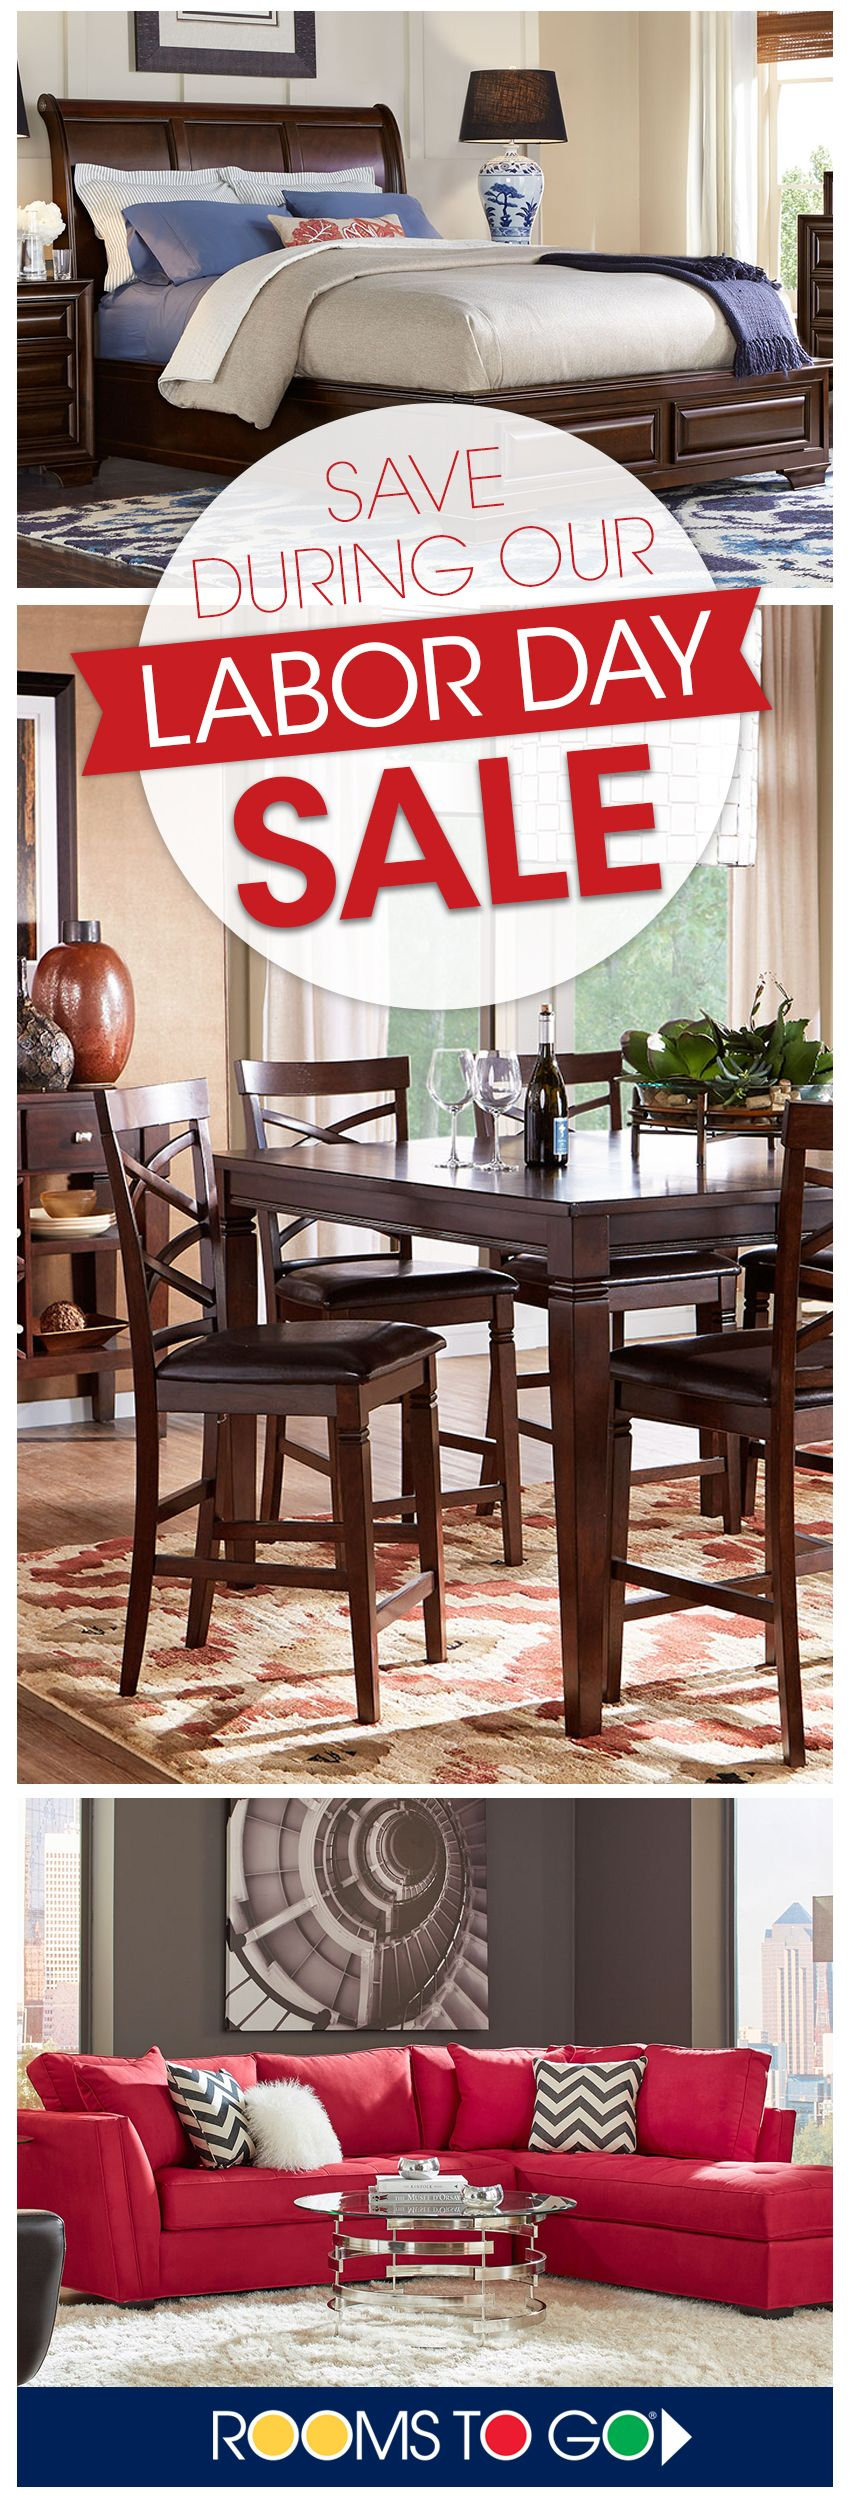 Visit Rooms To Go Now During Our Labor Day Sale, And Save On Our Amazing